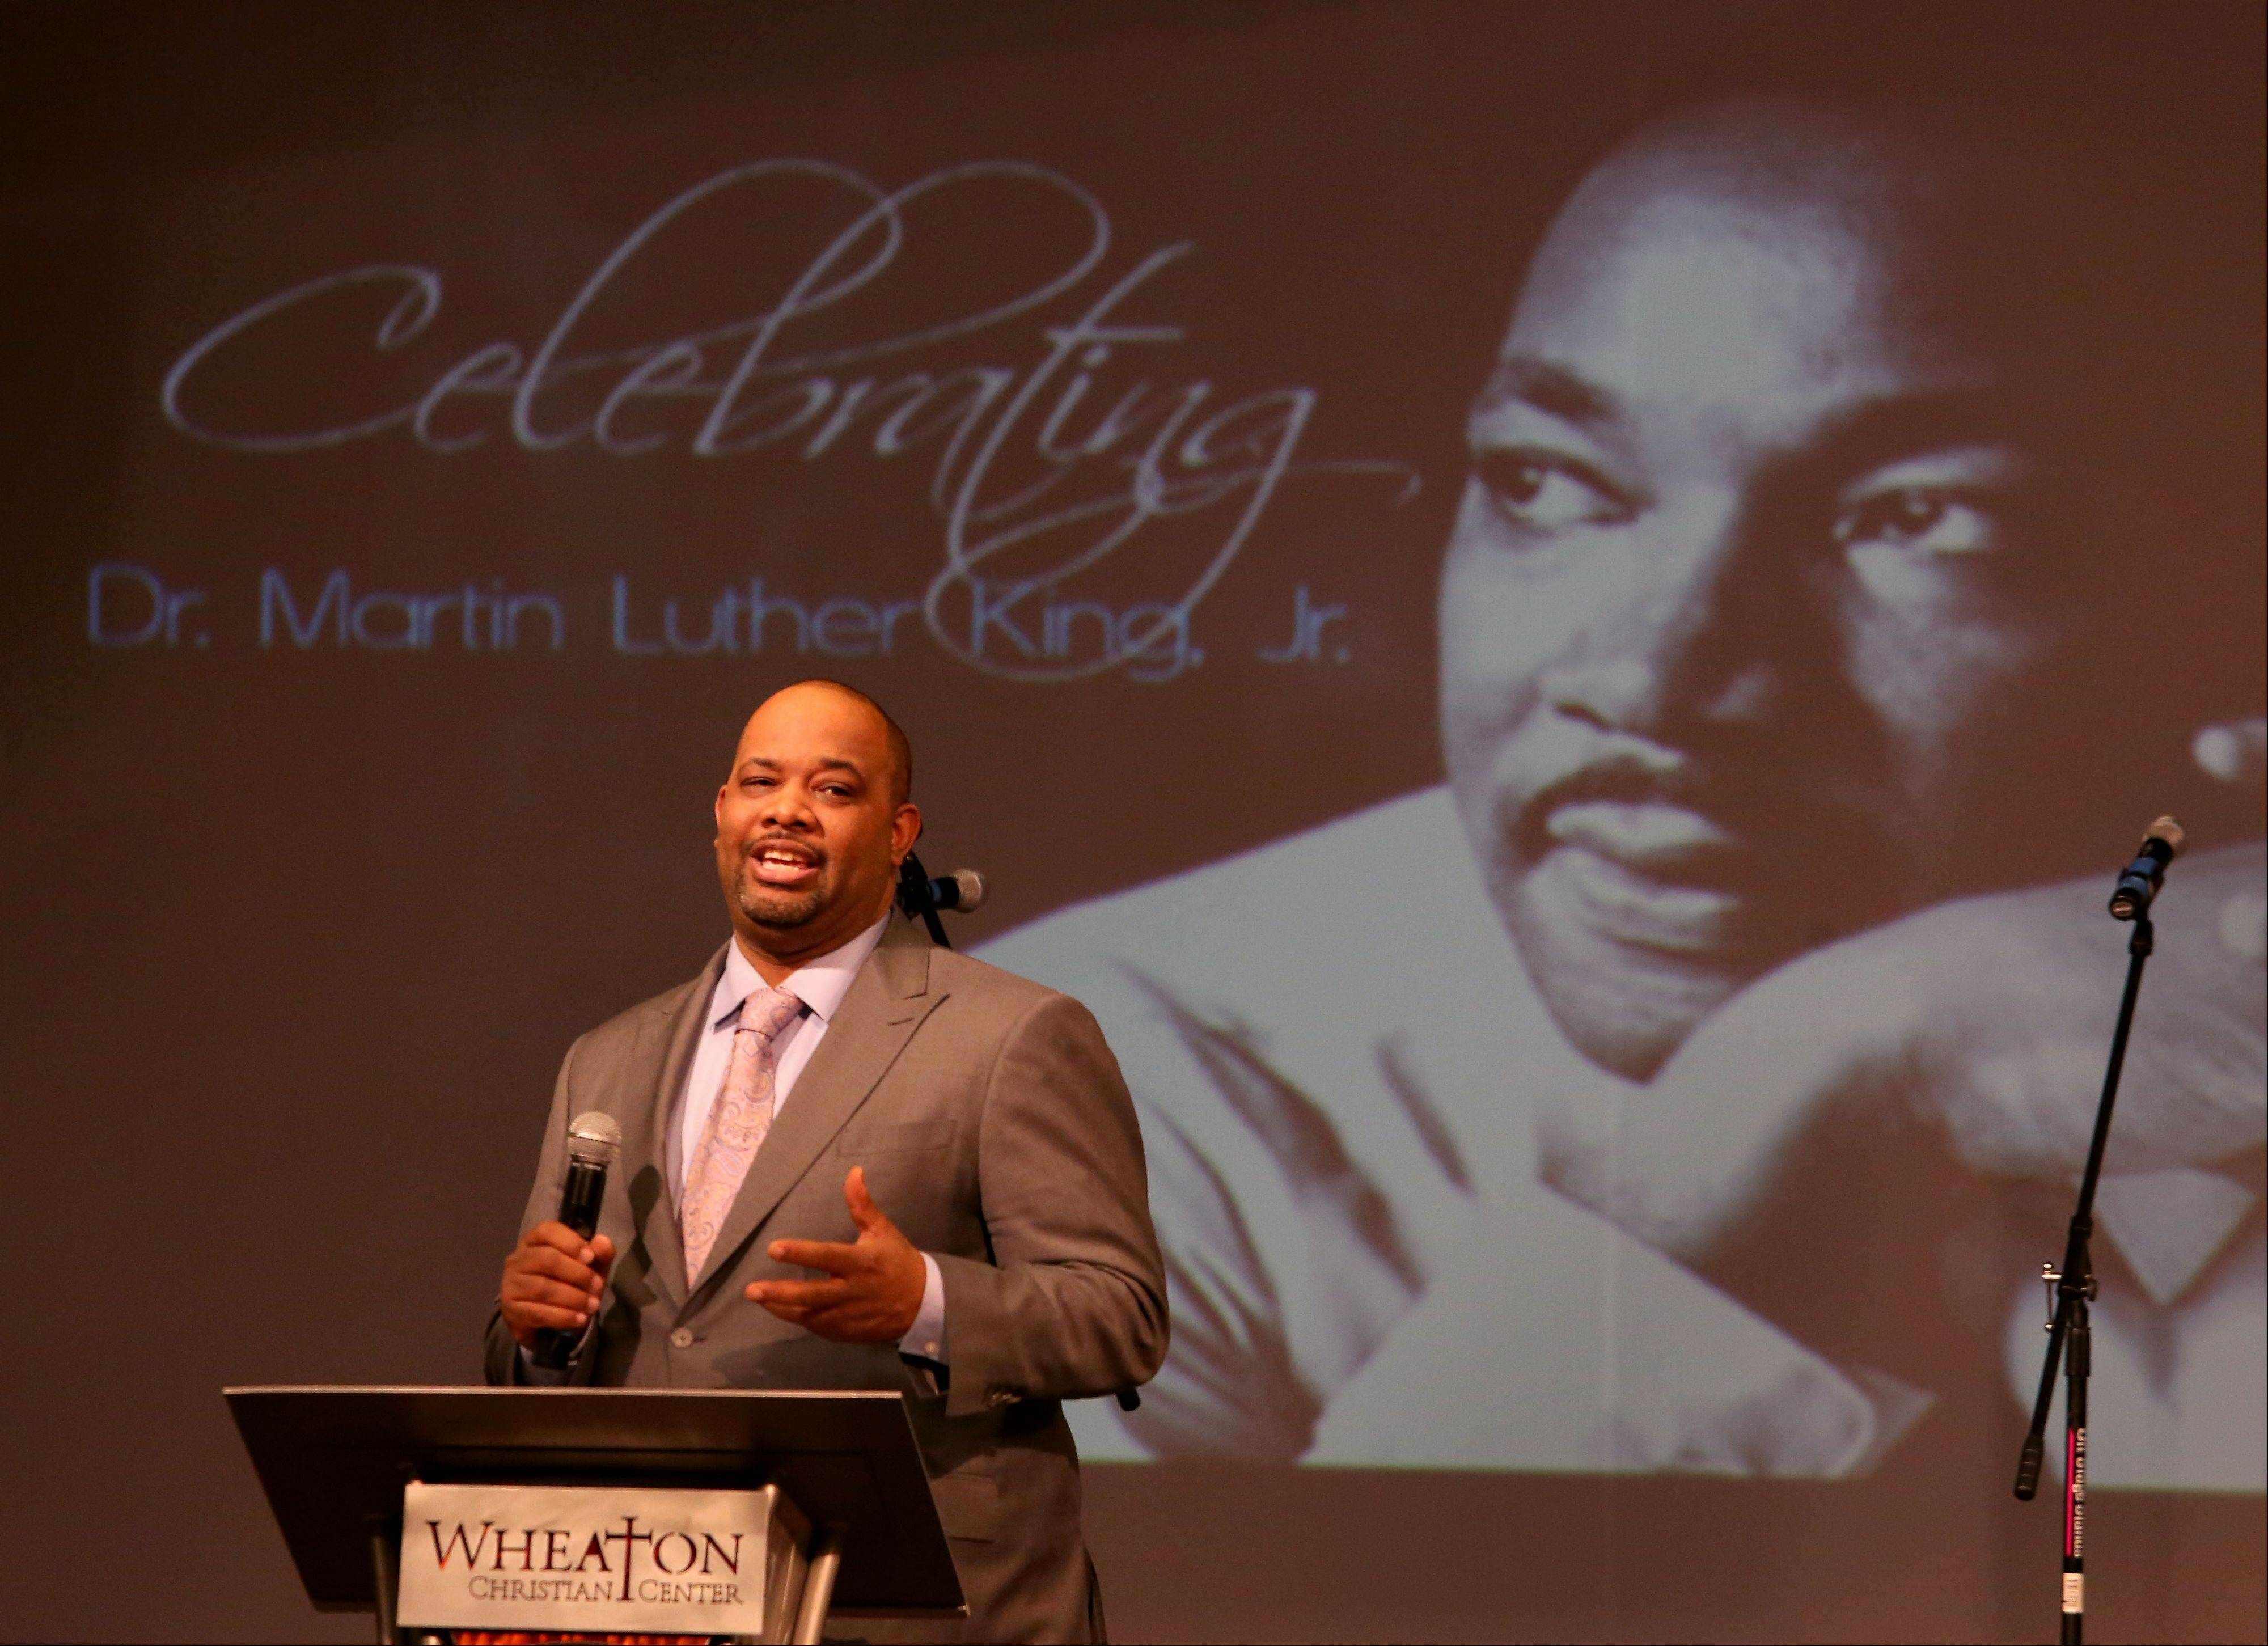 Pastor Corey Brooks from New Beginnings Church Chicago, speaks at the Martin Luther King Jr. Day celebration at the Wheaton Christian Center in Carol Stream on Monday.